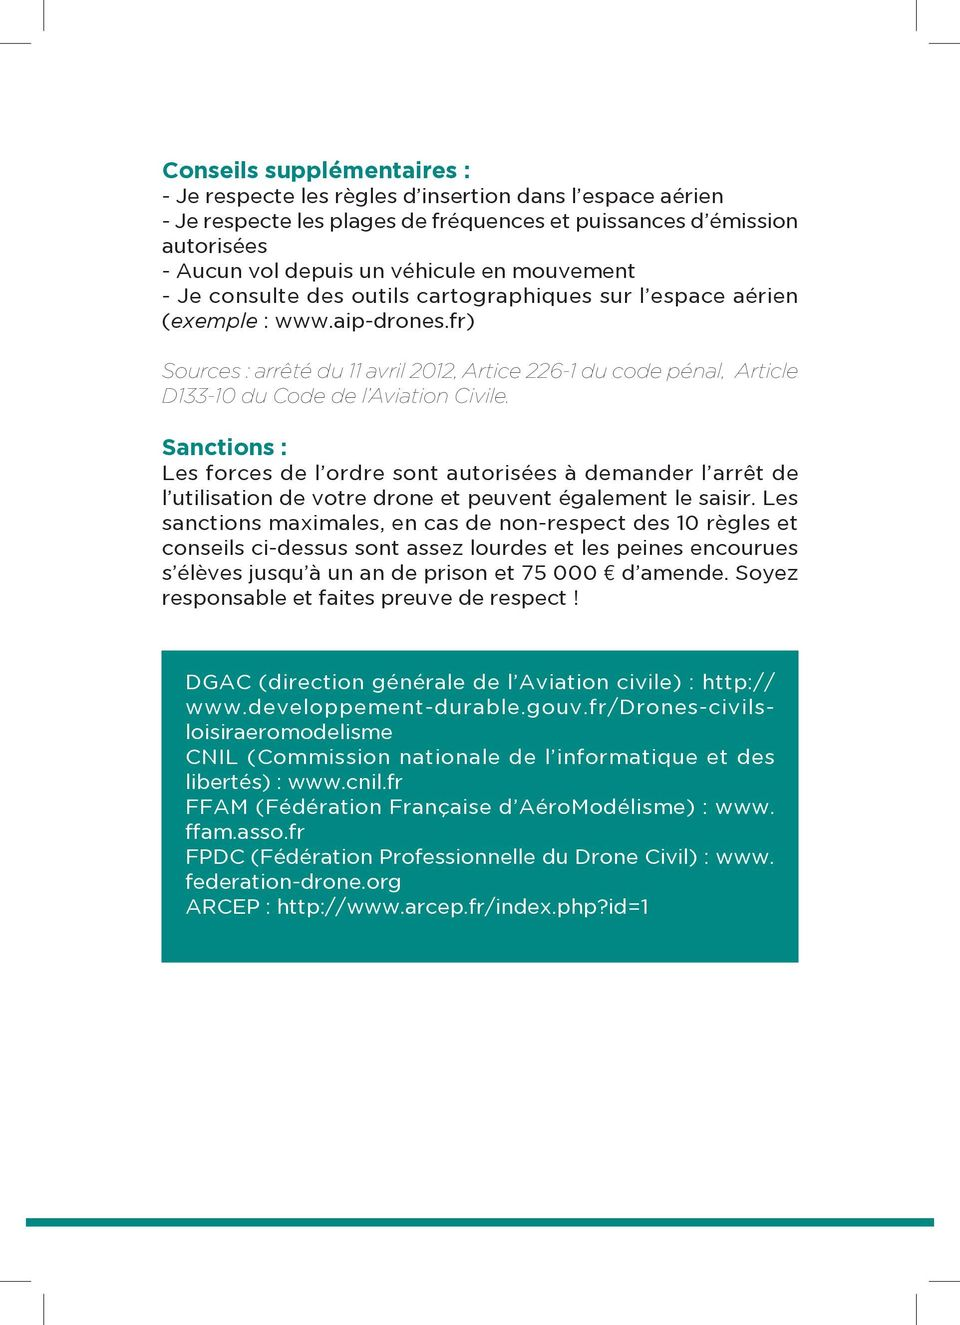 fr) Sources : arrêté du 11 avril 2012, Artice 226-1 du code pénal, Article D133-10 du Code de l Aviation Civile.